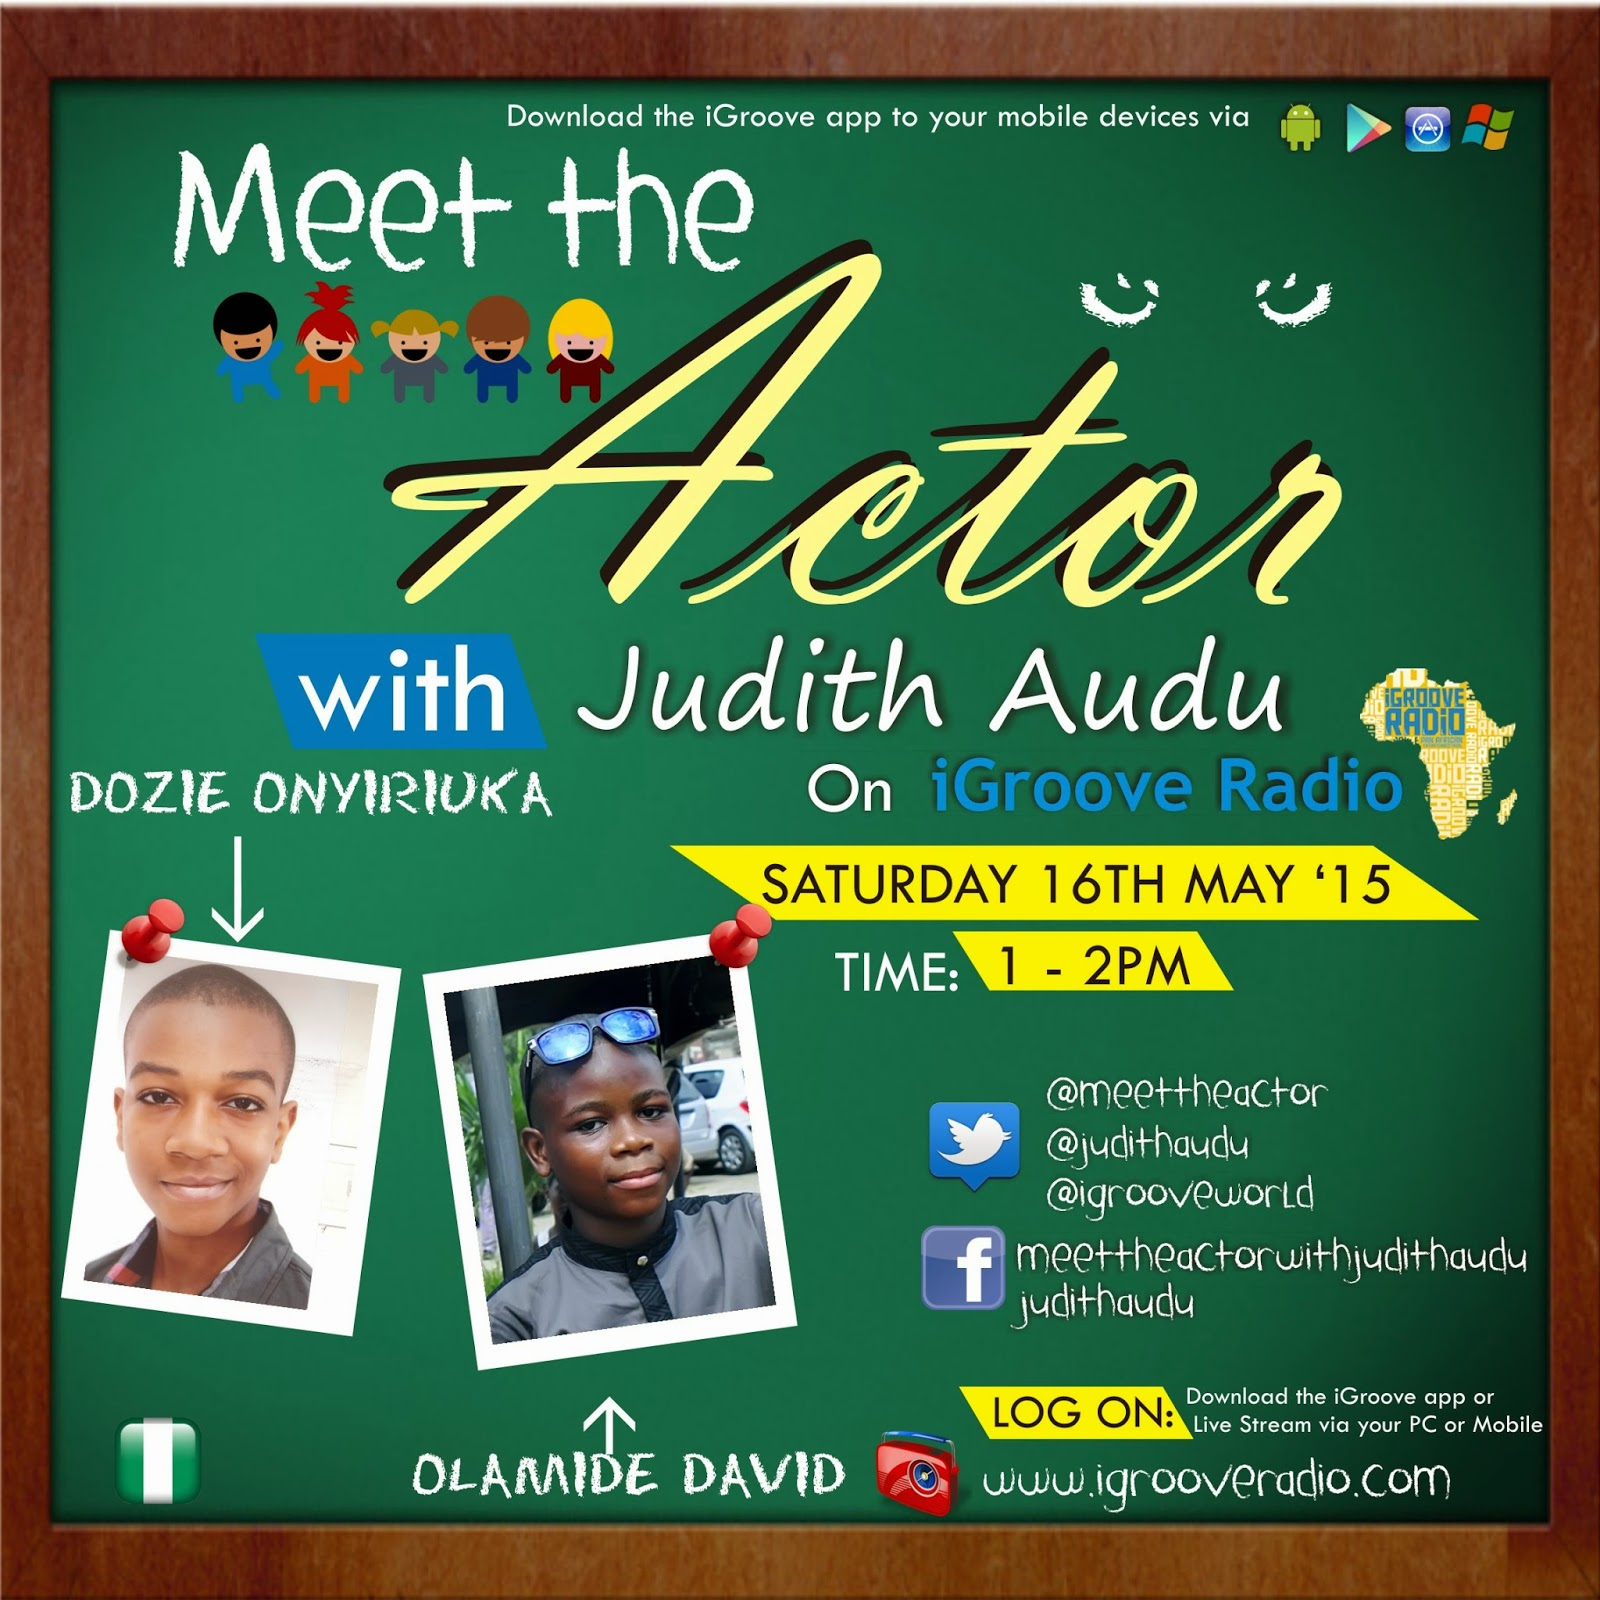 Afro introduction show profile of audu